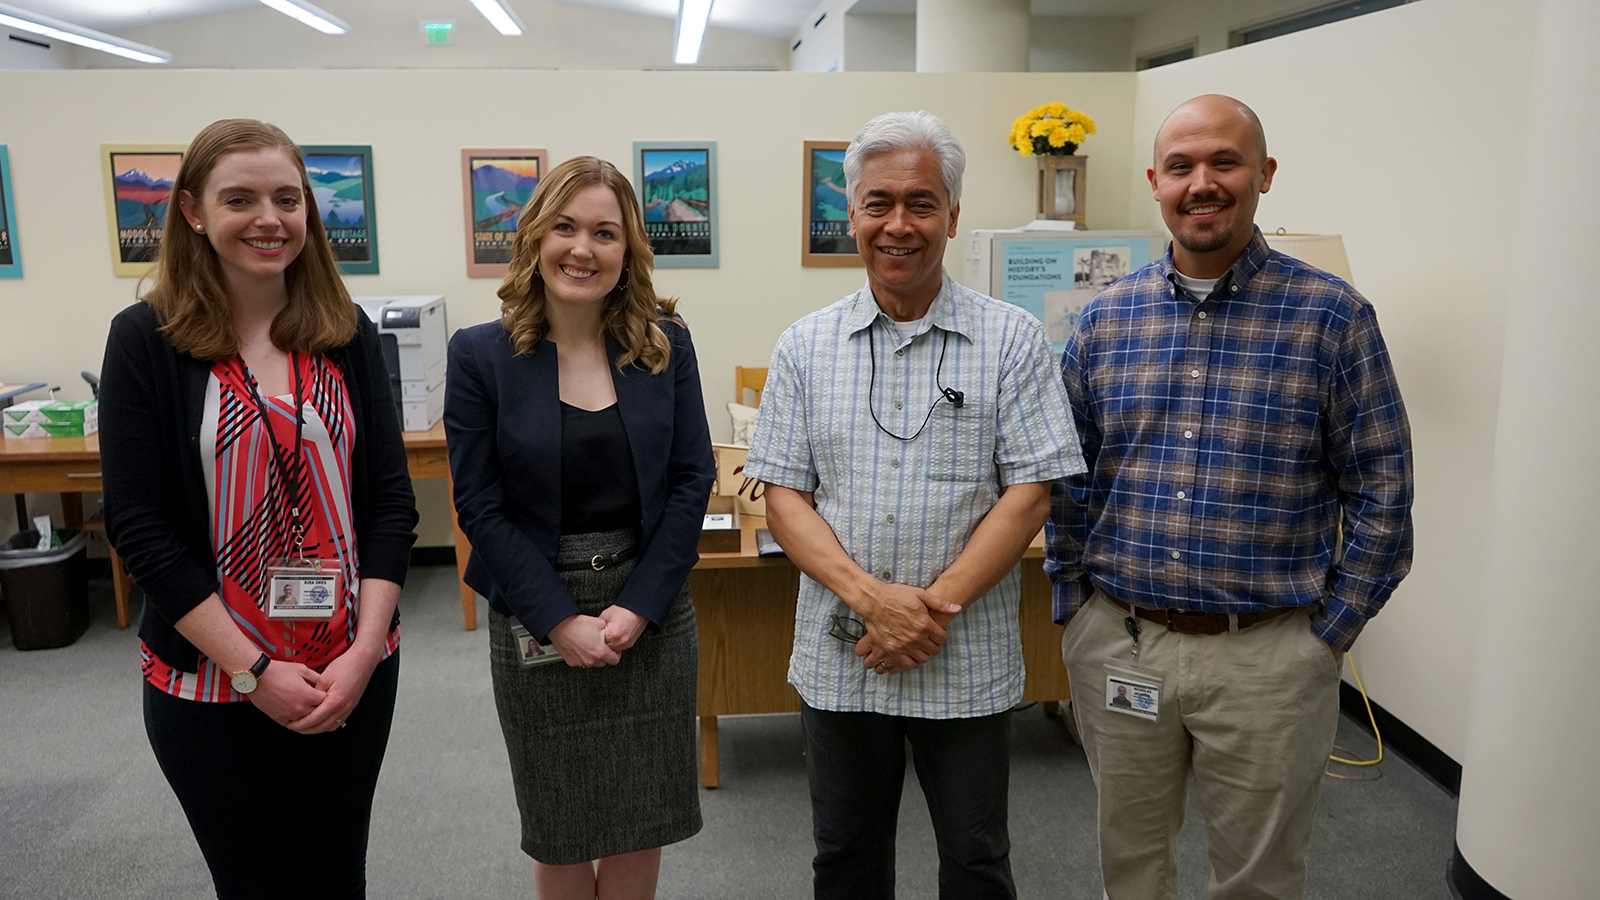 State Archives staff (L-R): Archivist Kira Dres, Acting State Archivist and Division Chief for the California State Archives Tamara Martin, and Document Preservation Technicians Juan Ramos and Nick Jackson.